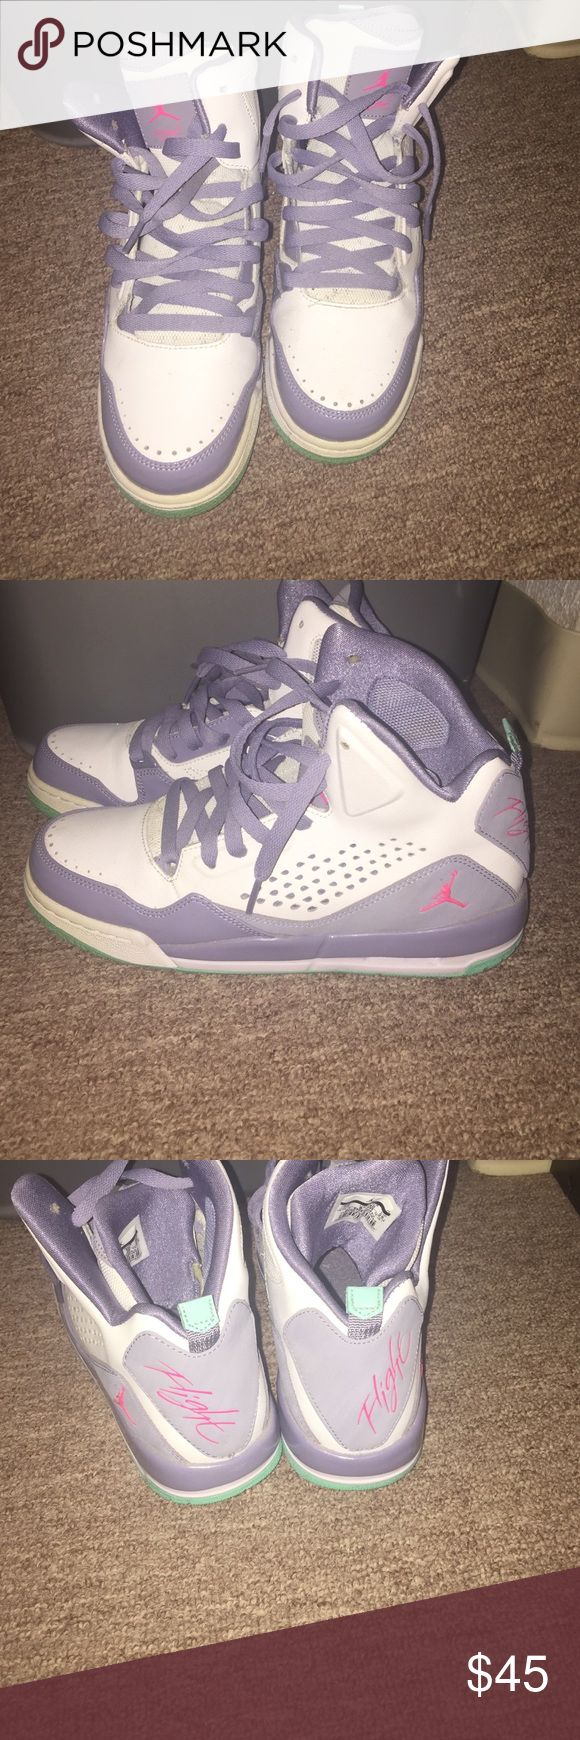 Jordan flights for girls White lavender and teal Jordan Flights for girls. No great condition. Barely touched. Girls 7Y but can be worn easily by women Jordan Shoes Sneakers